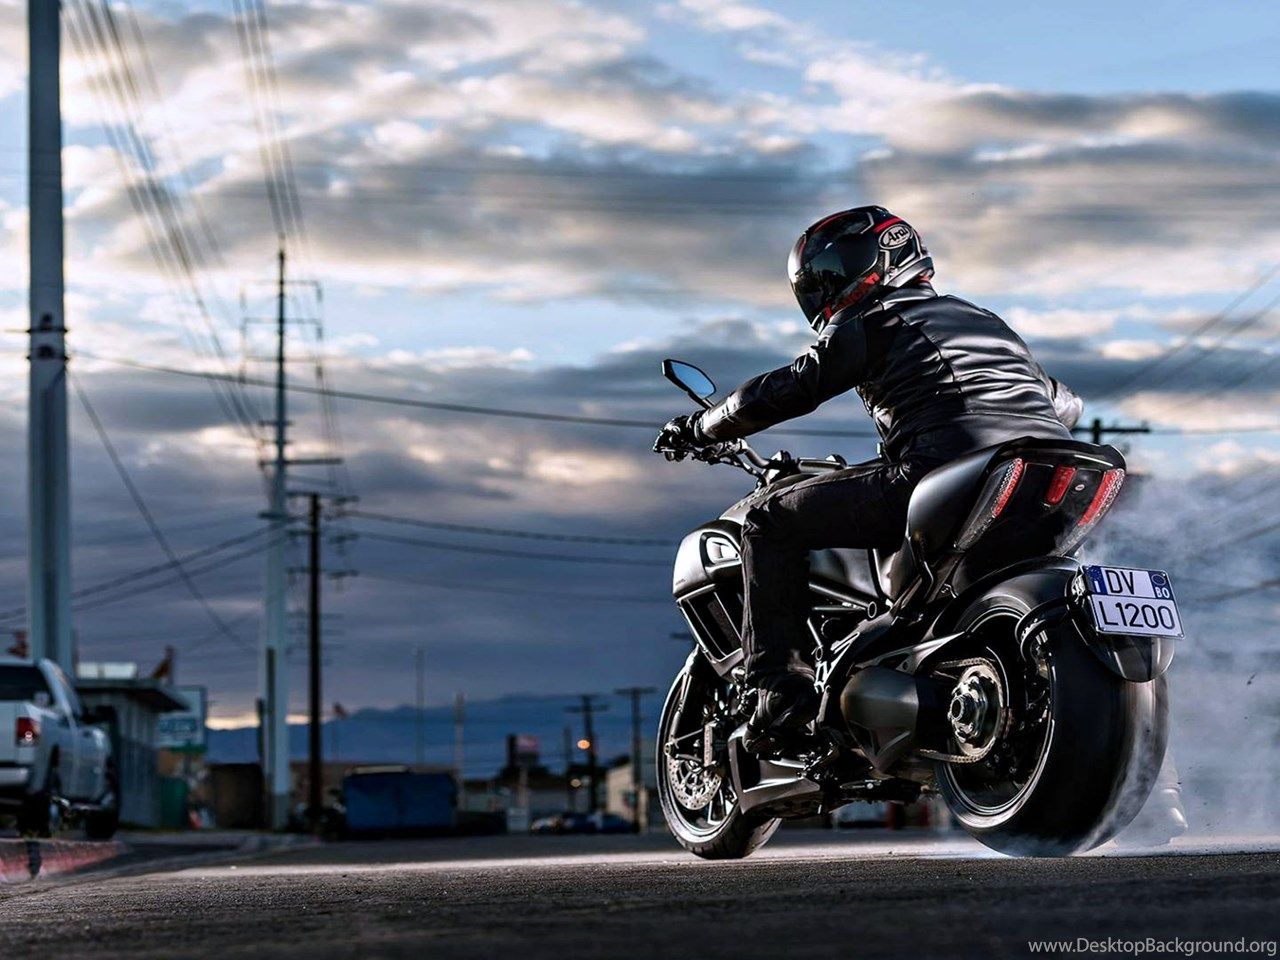 my motorcycle Before you buy or sell a used motorcycle, obtain a motorcycle history report to review accidents, damage, title history, and more motorcycle manual download the latest version of the motorcycle rider's manual to read about safety tips and the rules of the road.